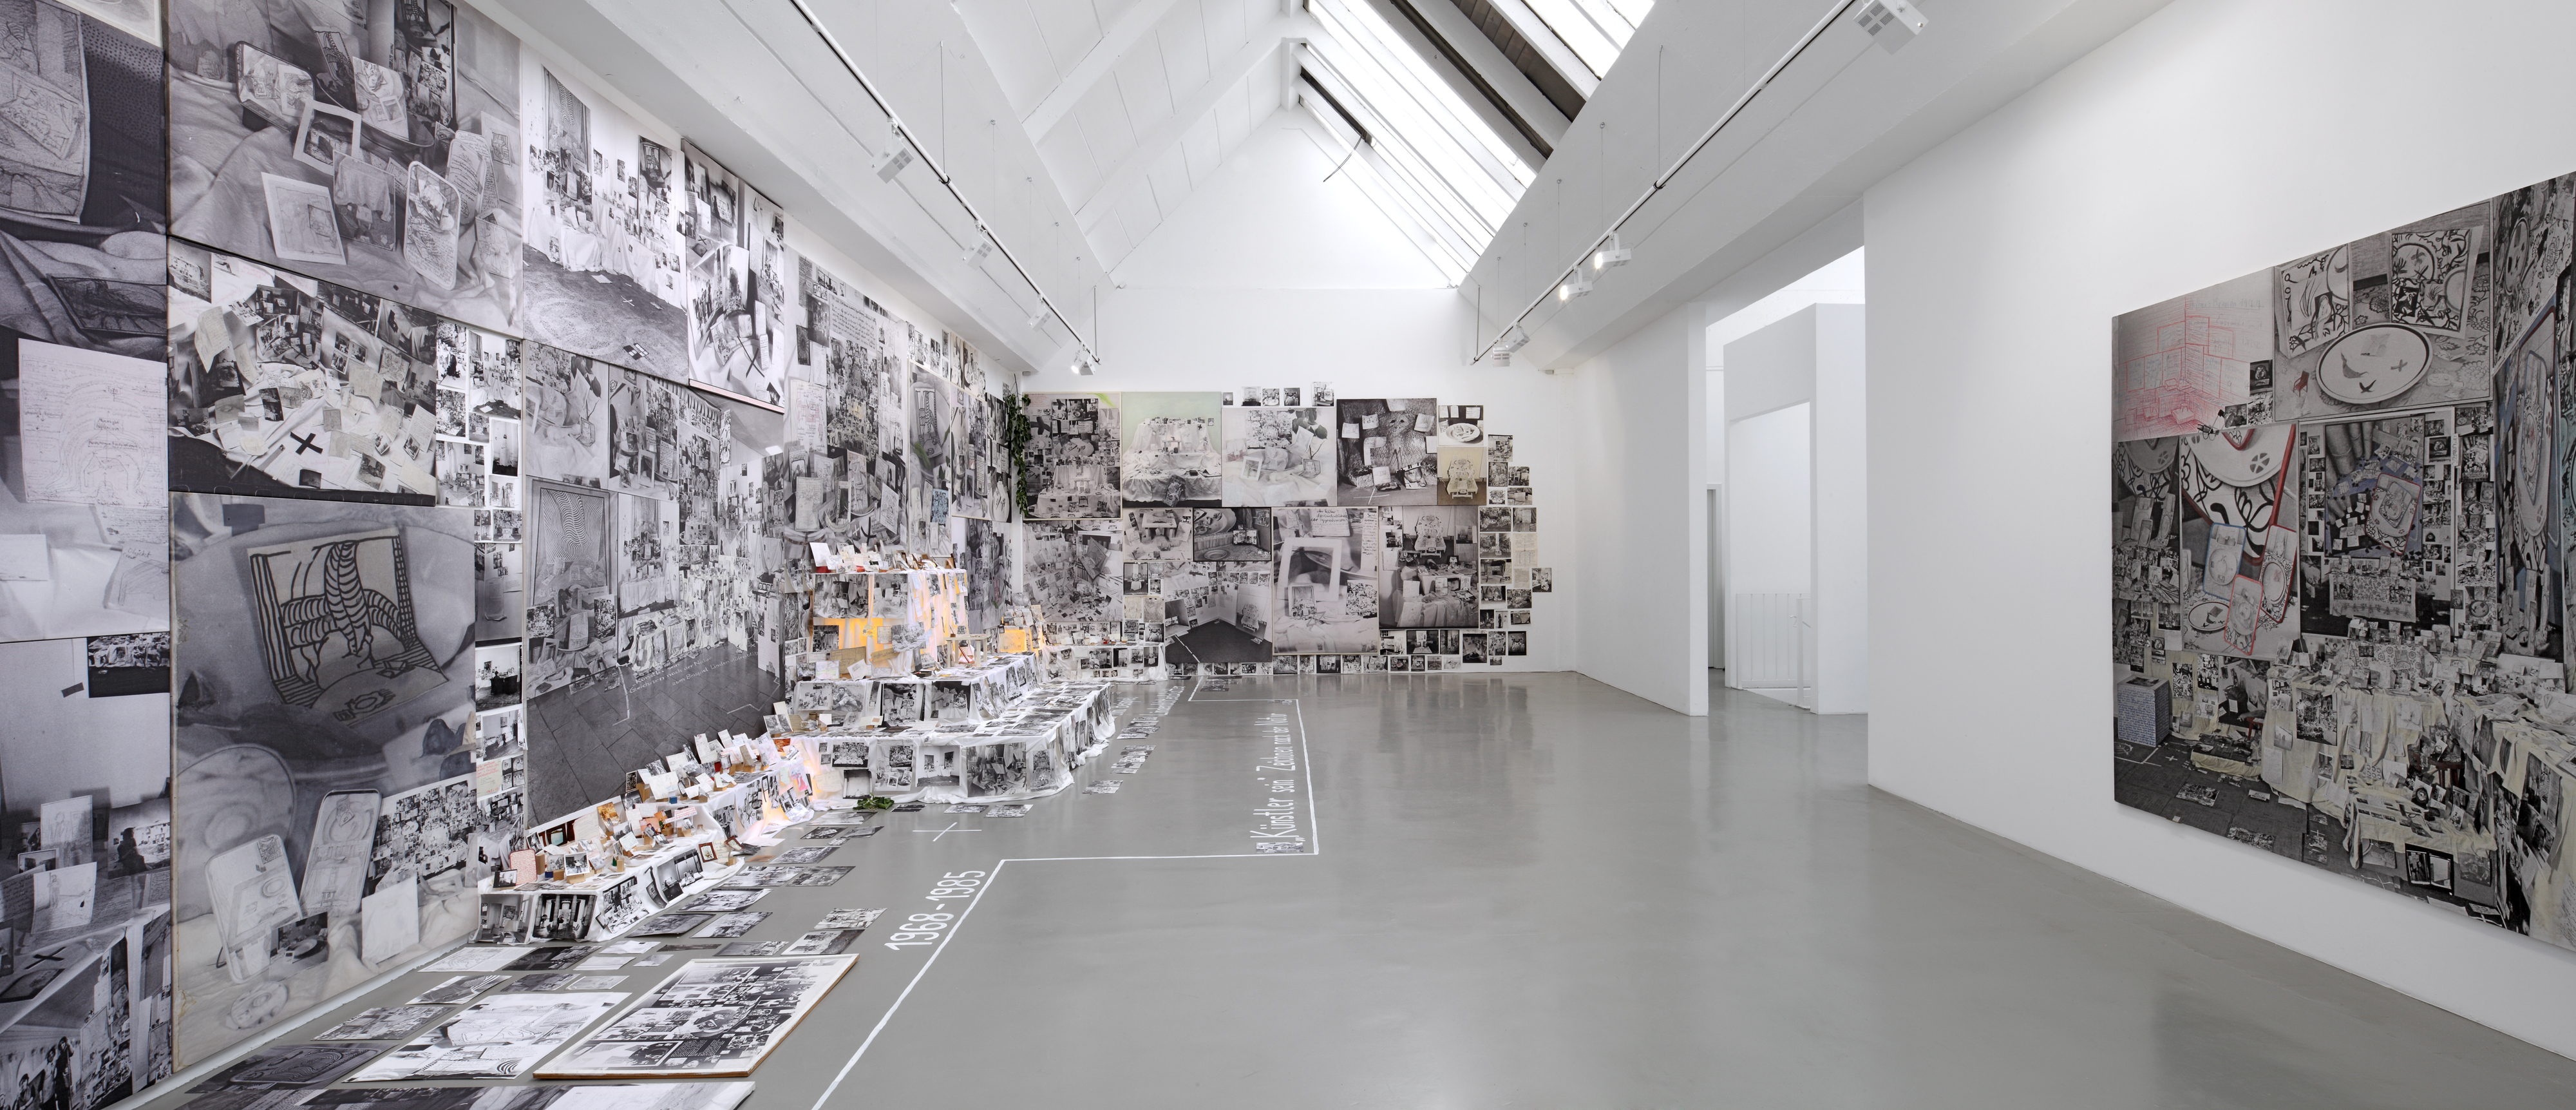 Galerie Barbara Thumm \ Anna Oppermann: Being an artist (Drawing from nature, for example linden blossom petals), 1969 – 1985